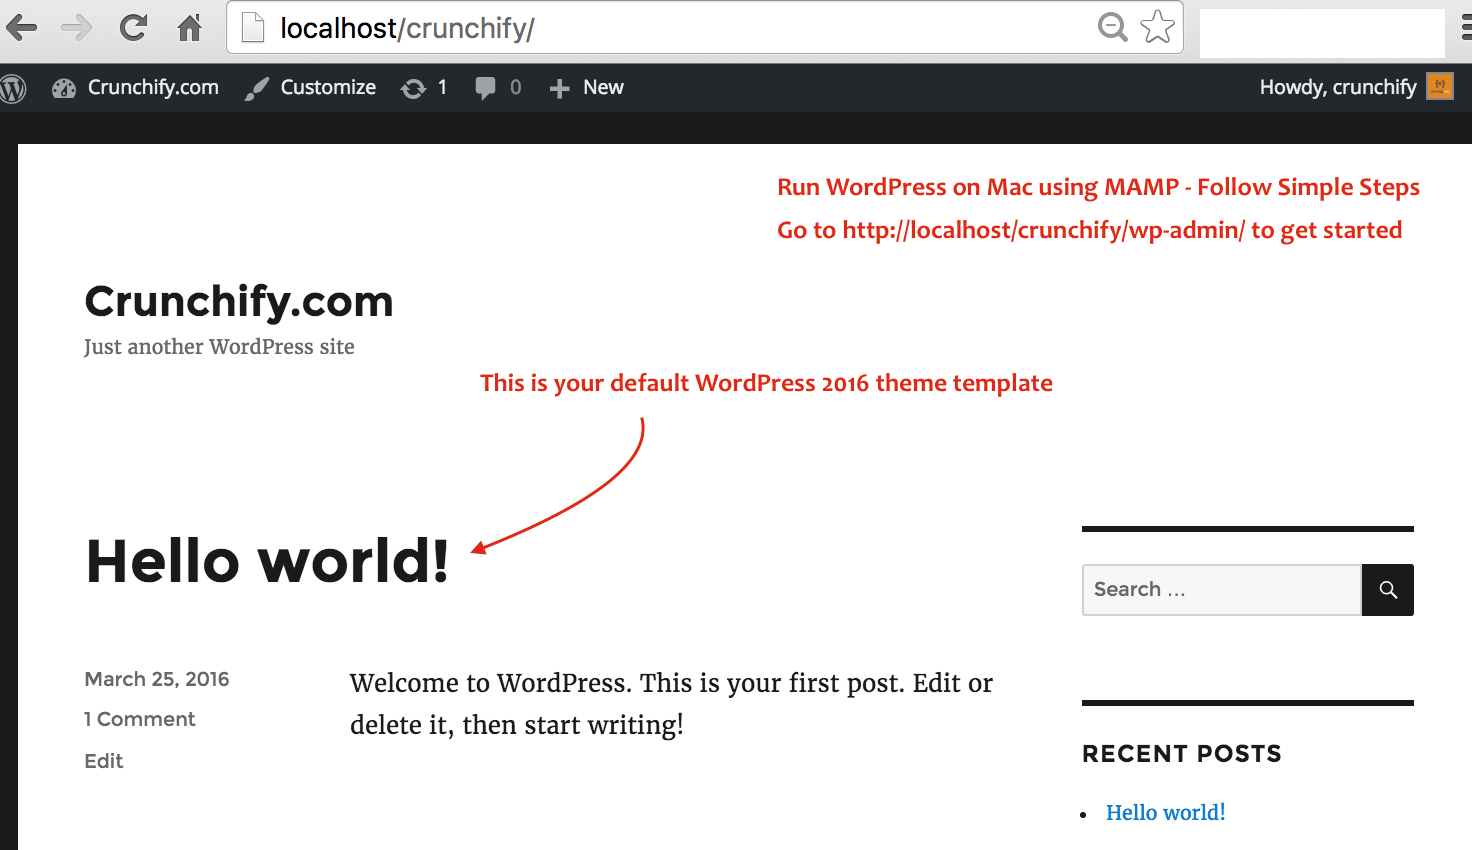 Run WordPress on Mac using MAMP - Follow Simple Steps